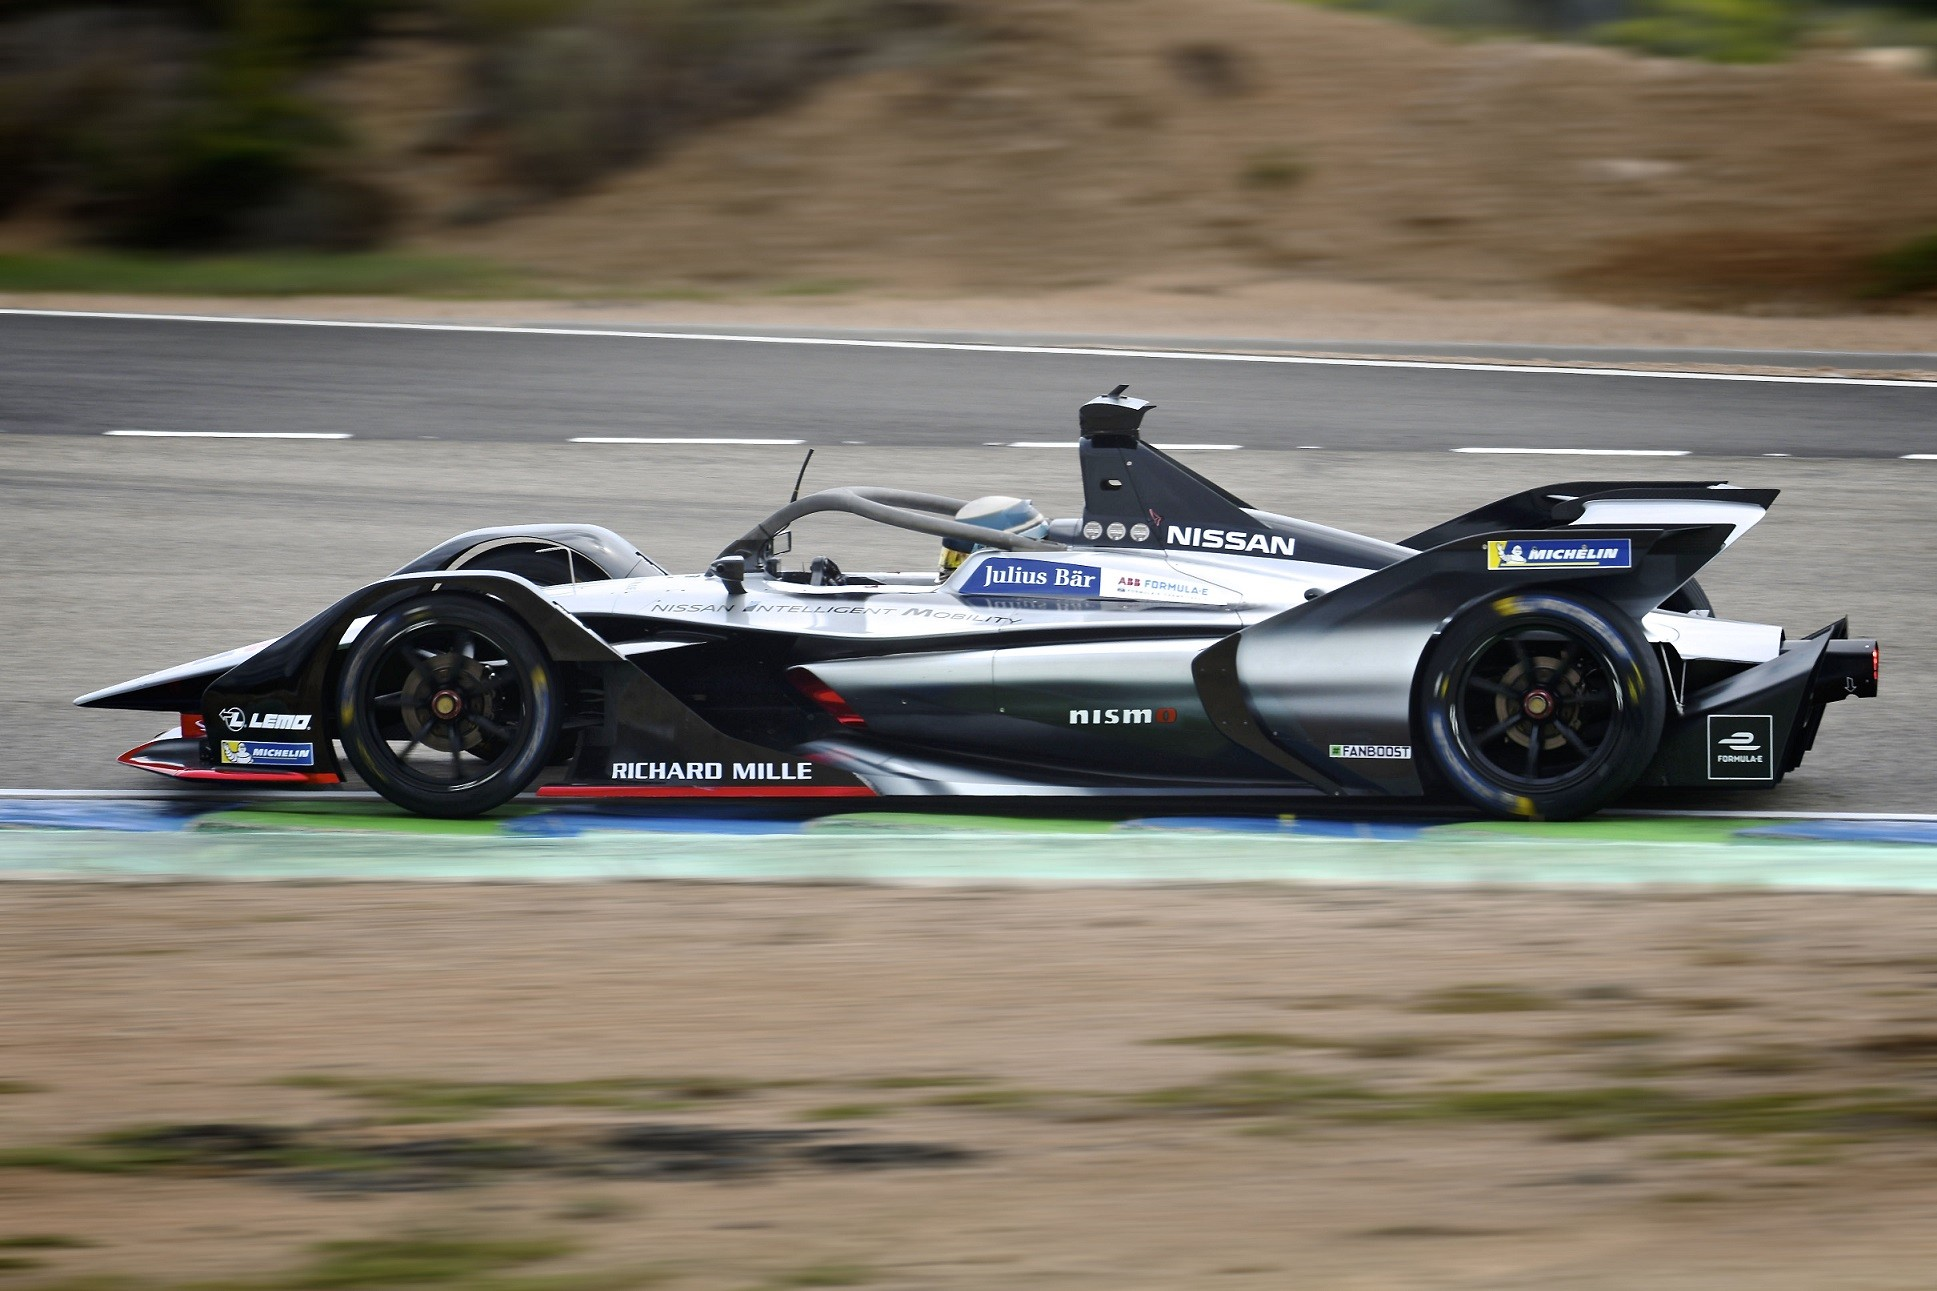 Nissan has kicked off its testing program in preparation for its debut in the ABB FIA Formula E Championship which begins in December 2018.